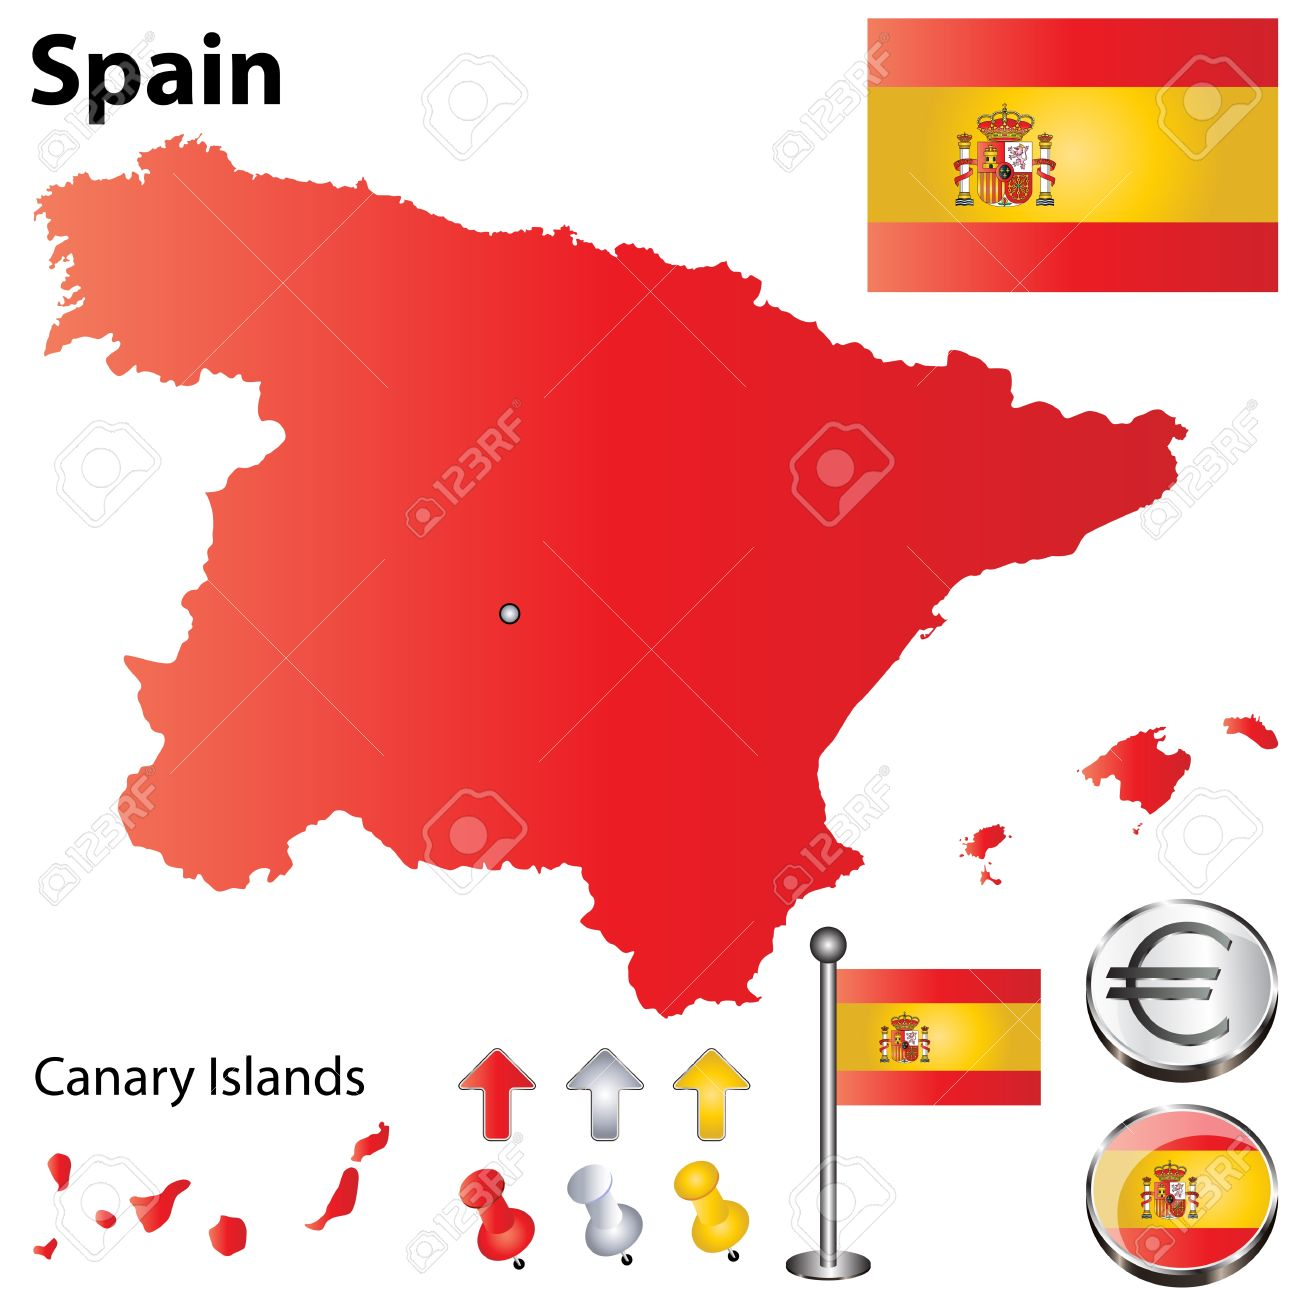 Vector set of Spain country shape with flags, calendar and icons isolated on white background Stock Vector - 13906277